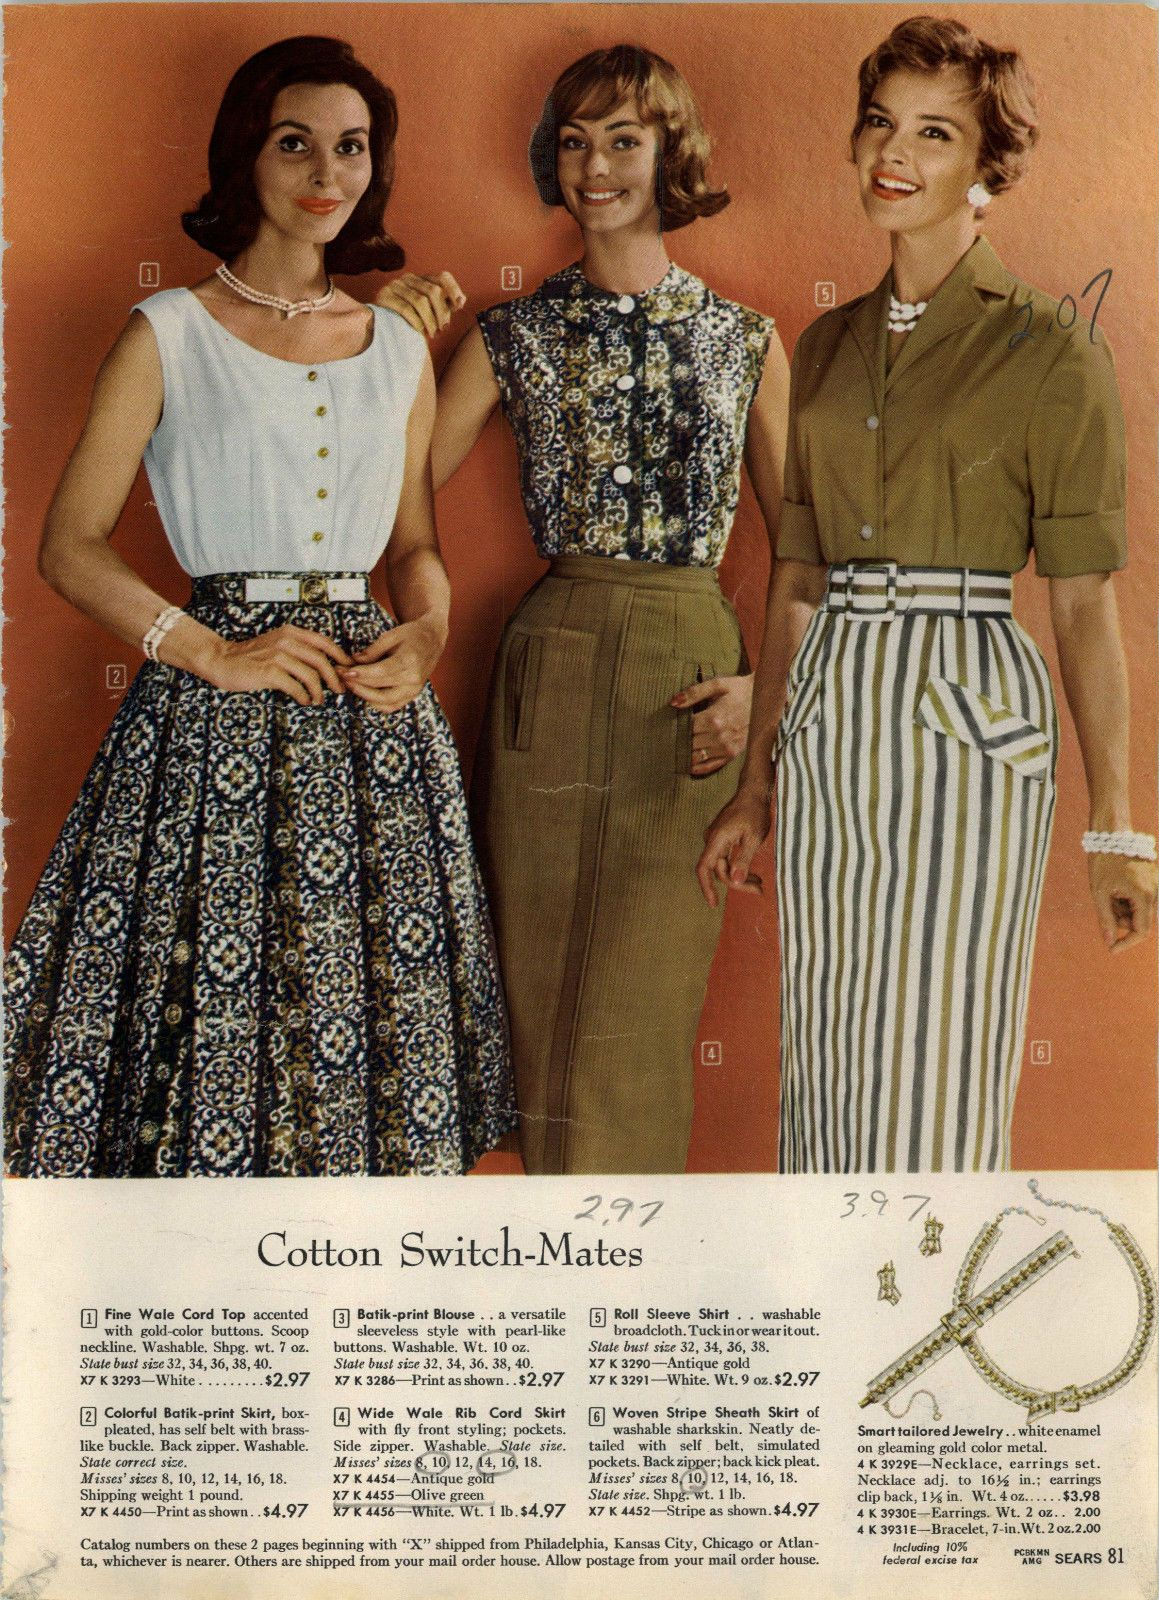 Pin by Theresa Tucker on All about my style--60s separates | Summer